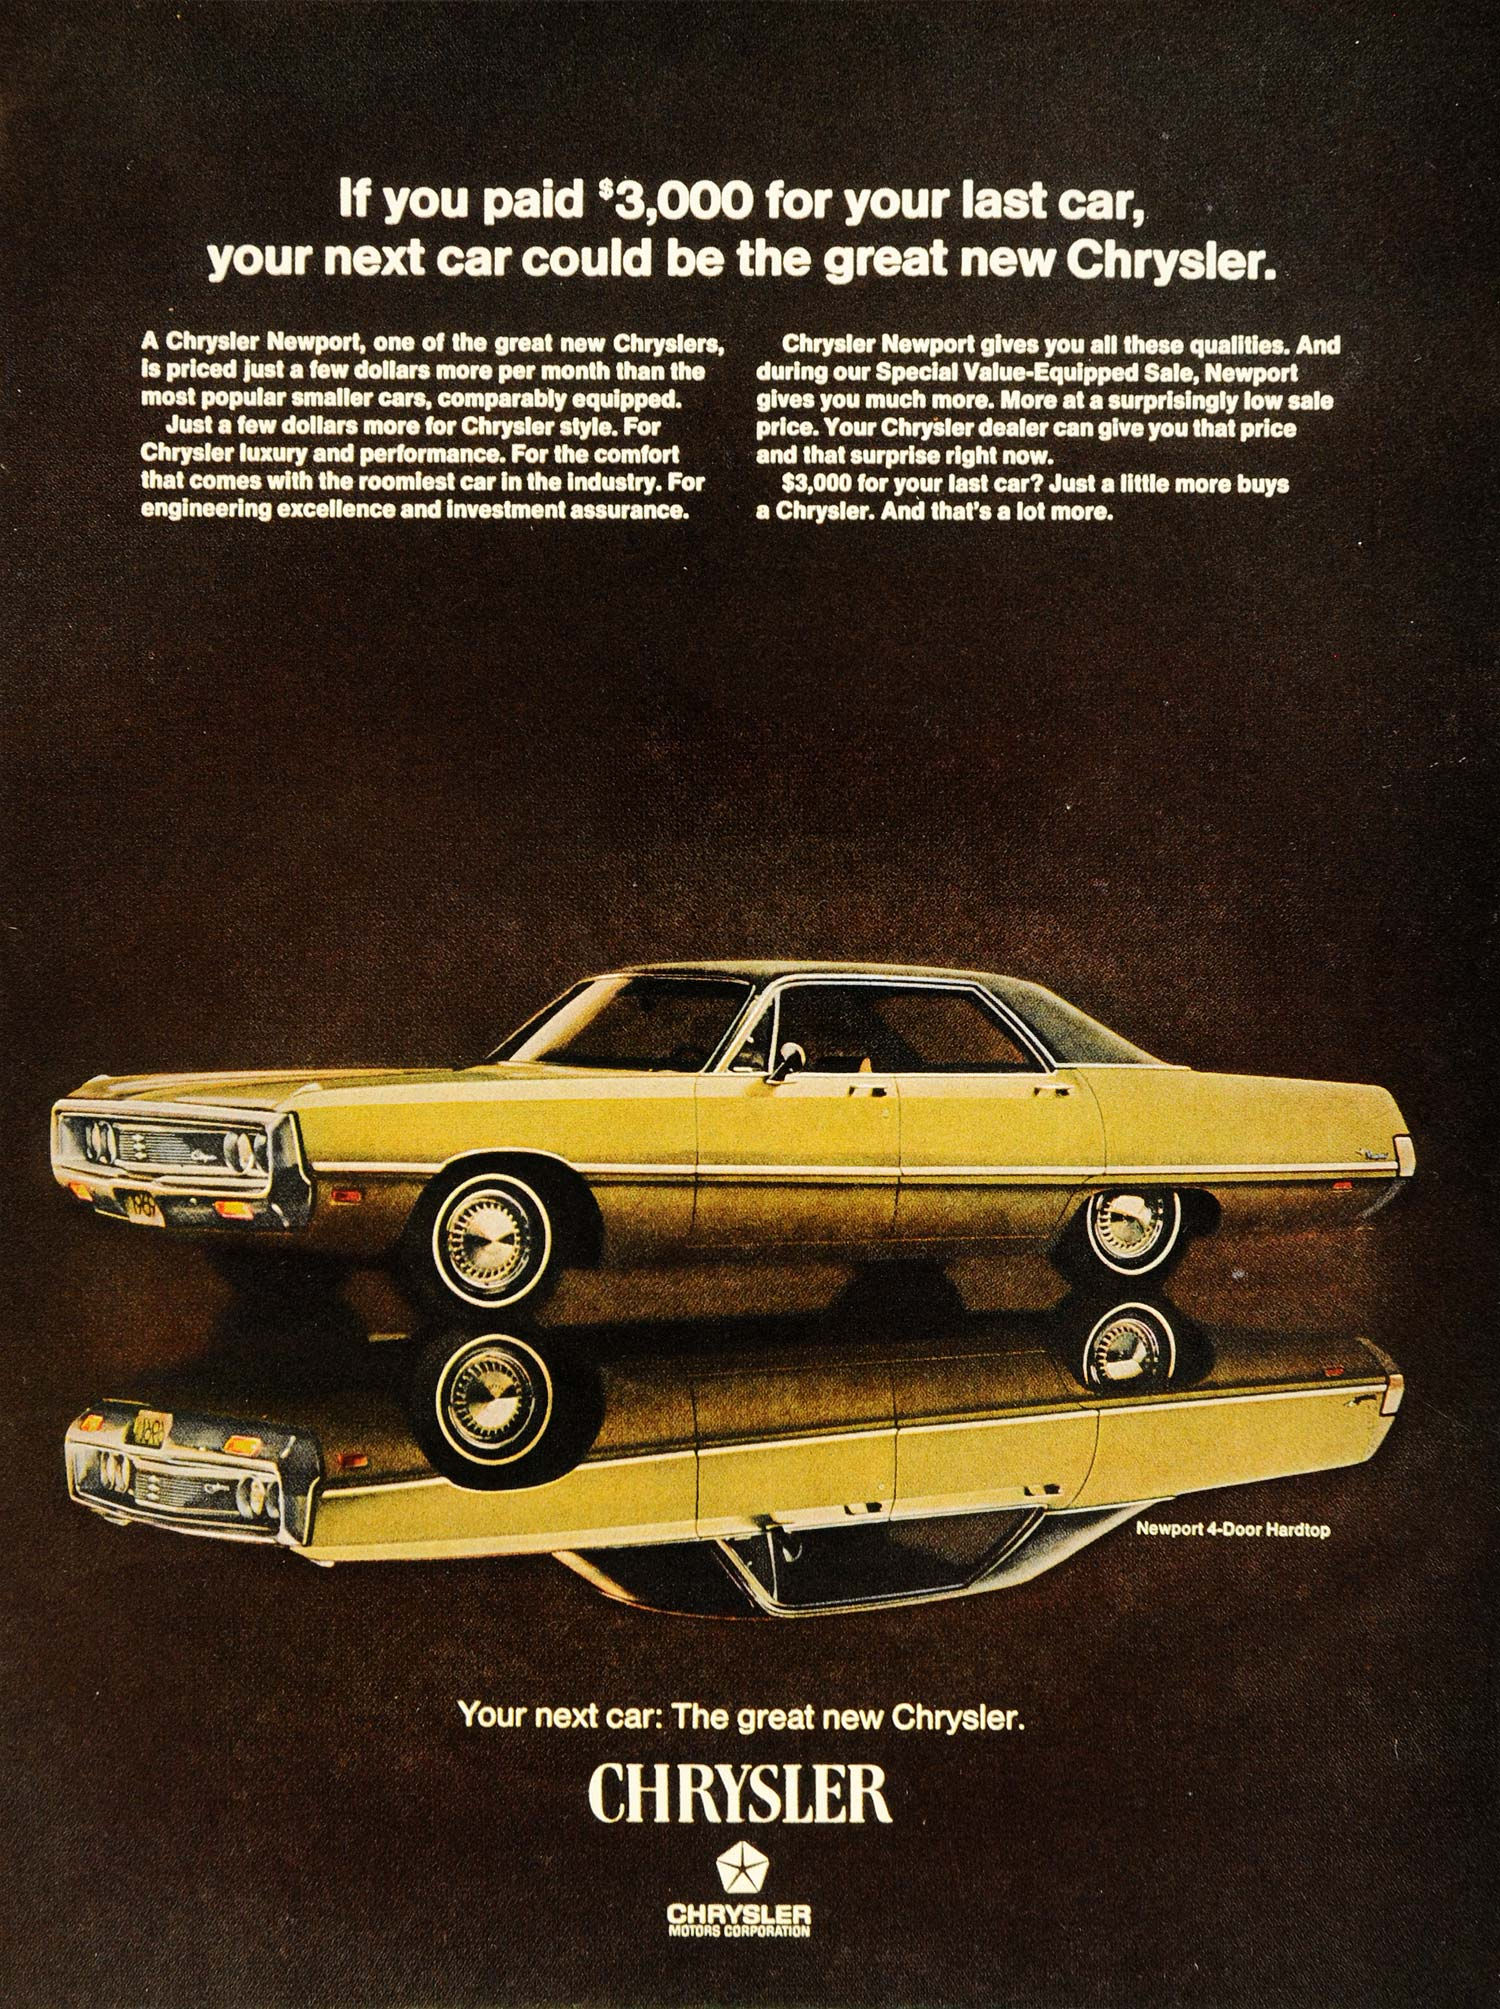 1969 Ad Vintage Chrysler Newport Four Door Hardtop - ORIGINAL ADVERTISING TM3